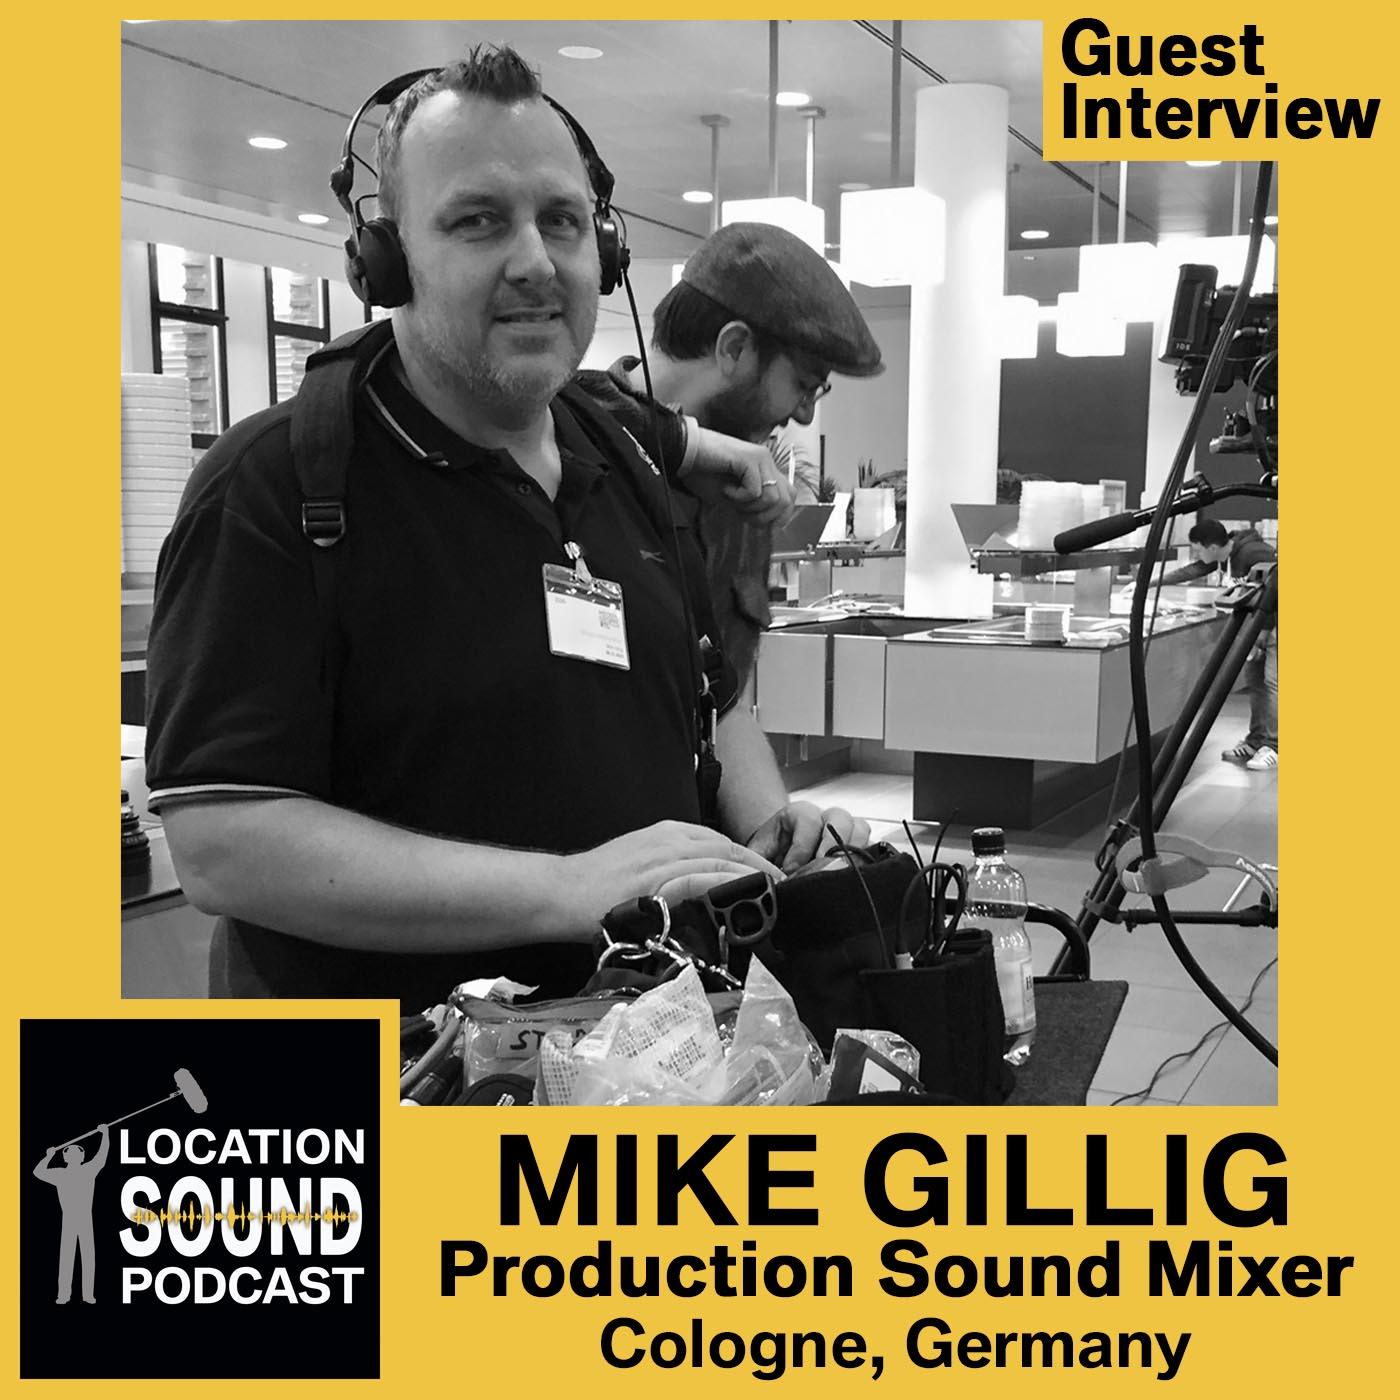 062 Mike Gillig - Production Sound Mixer based out of Cologne, Germany